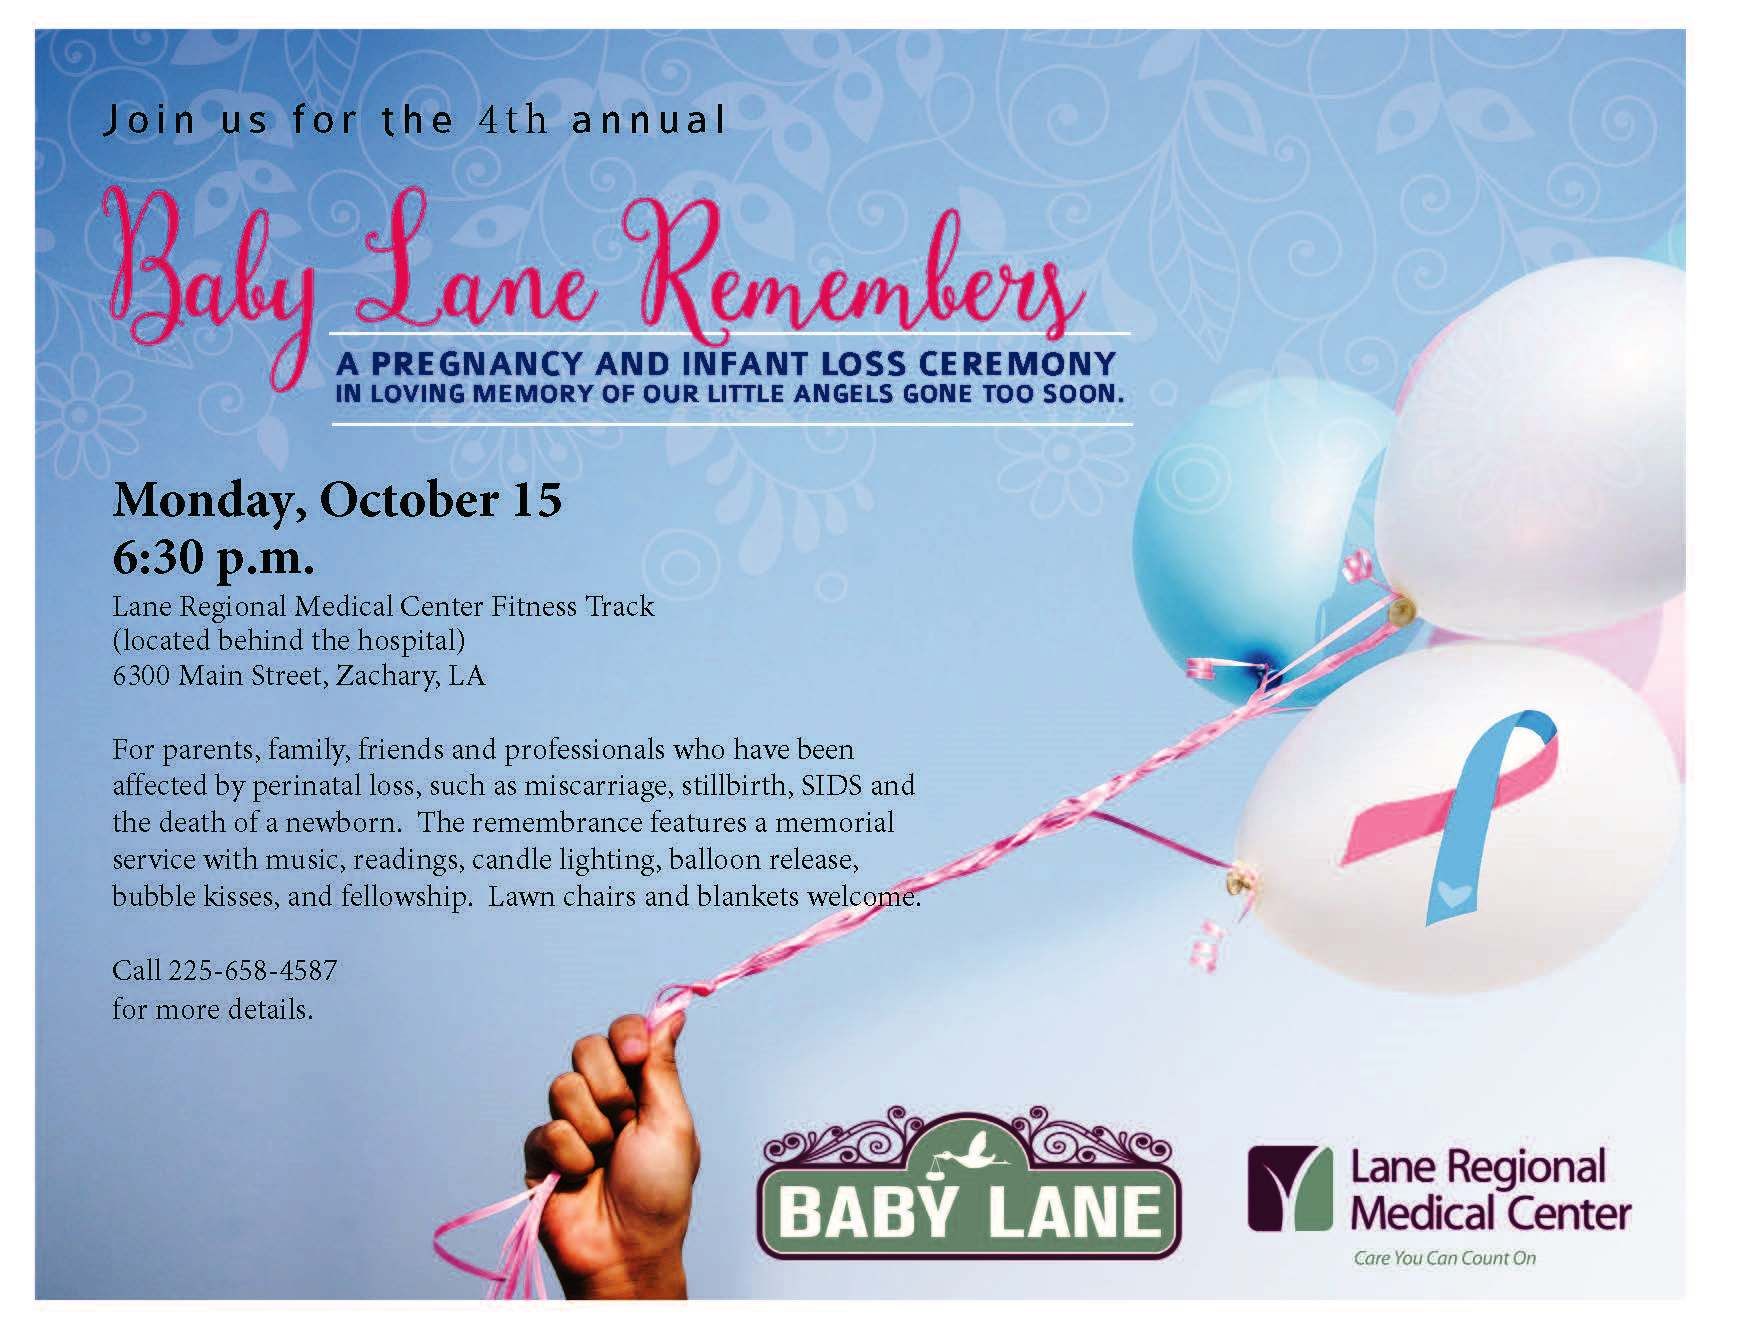 Pregnancy and Infant Loss Remembrance Ceremony to be Held at Lane Regional Medical Center